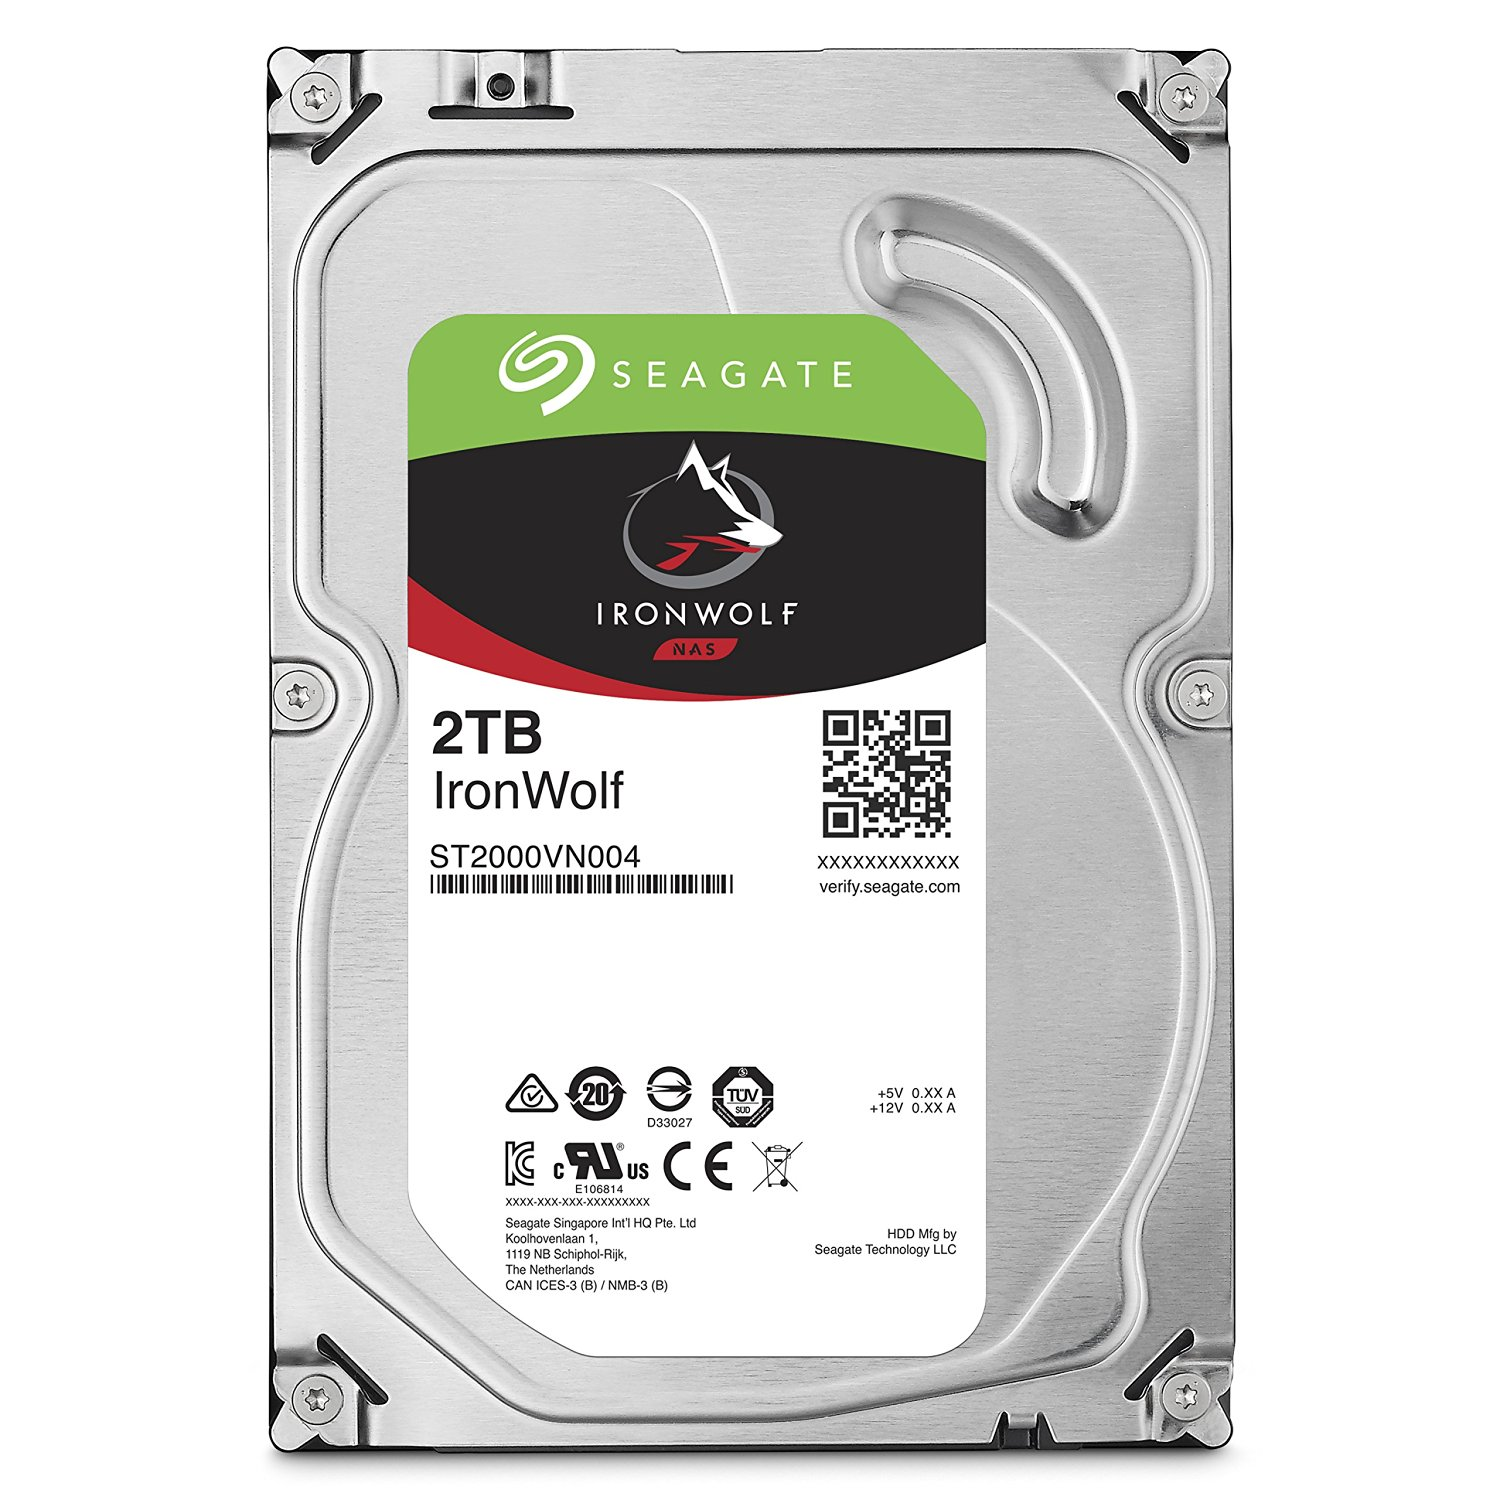 Seagate IronWolf 2TB NAS HDD